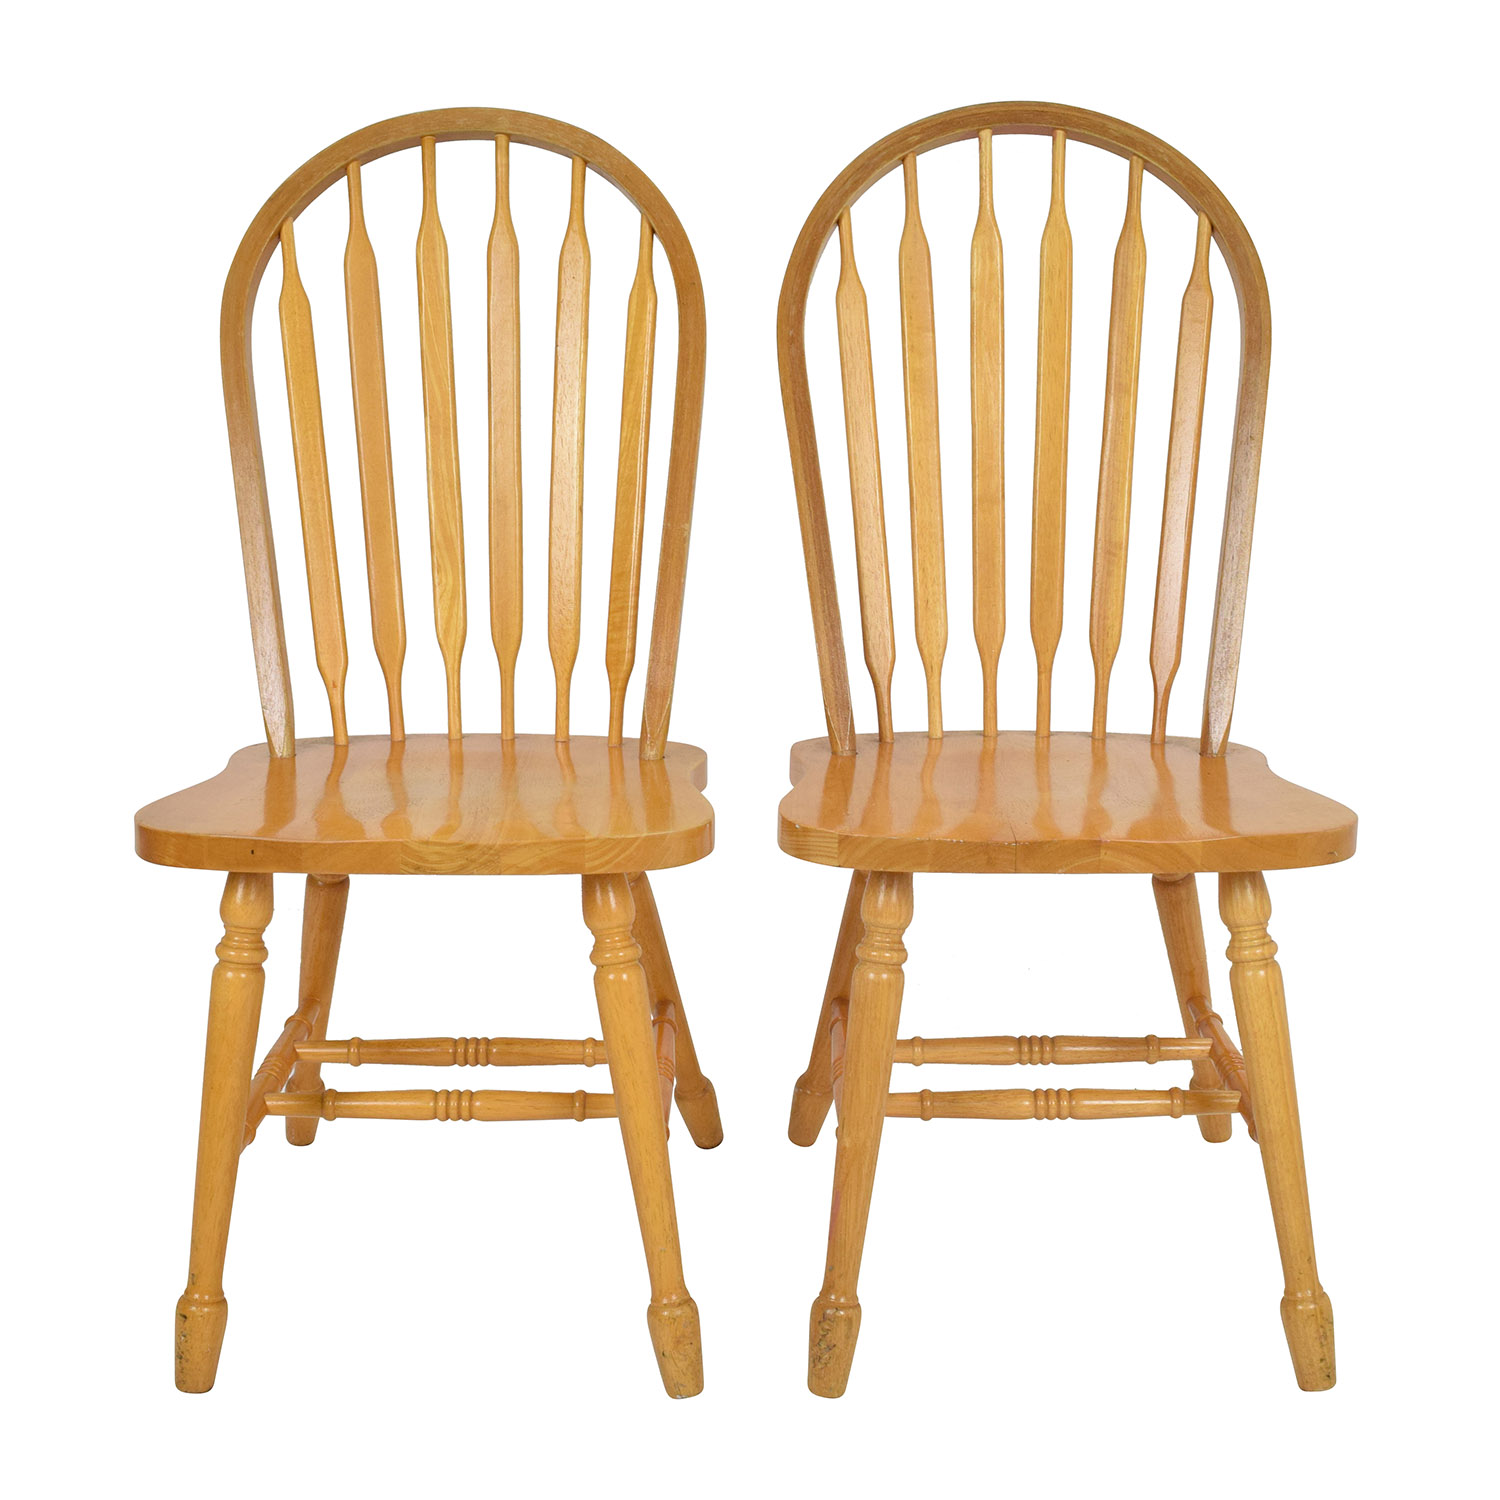 Wood Dining Chairs 90 Off Coaster Furniture Coaster Furniture Windsor Wood